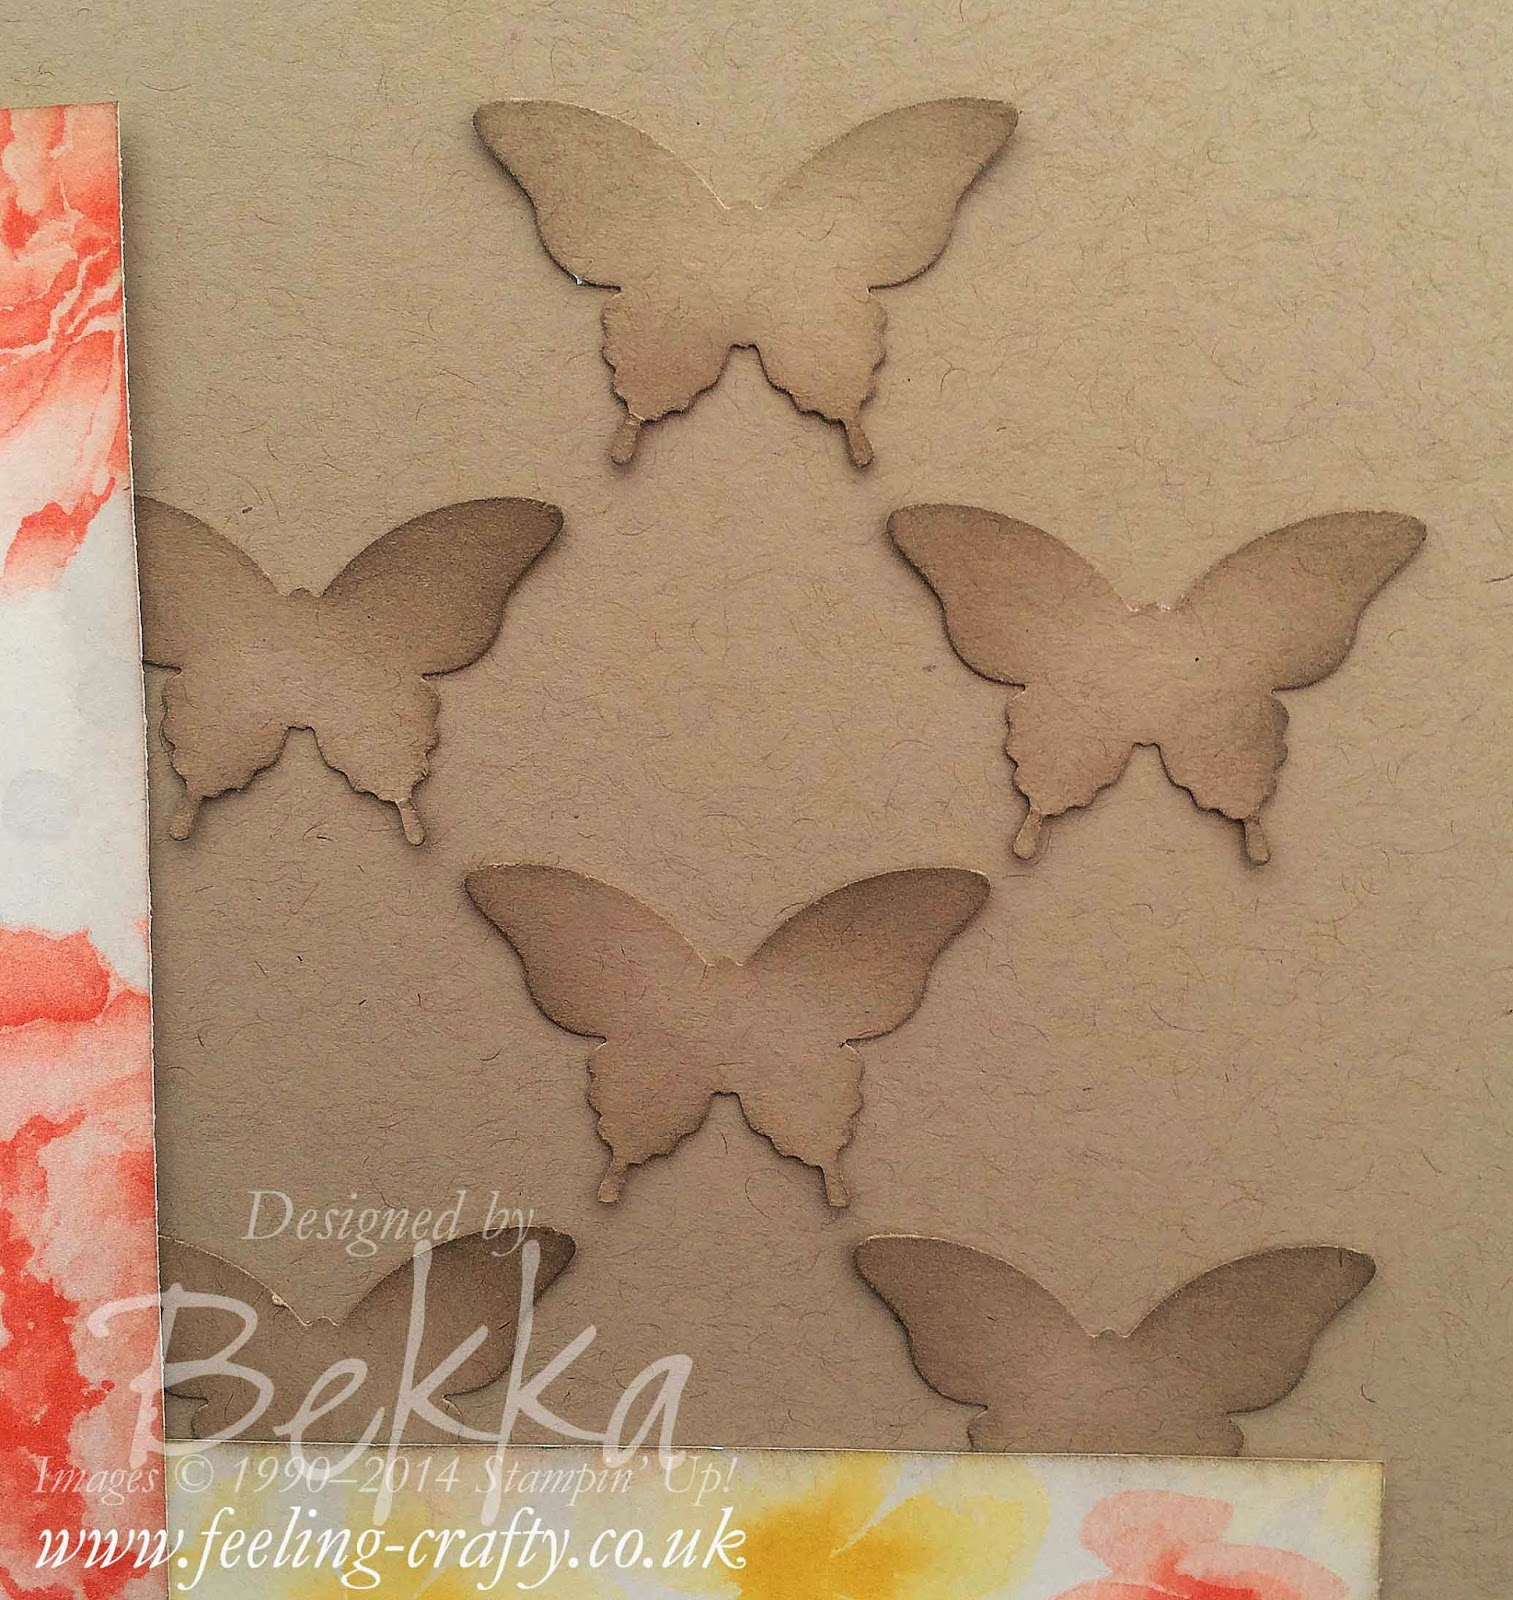 Beautiful Butterfly Details of a Scrapbook Page by UK based Stampin' Up! Demonstrator Bekka - check her blog every Saturday for Scrapbook Ideas